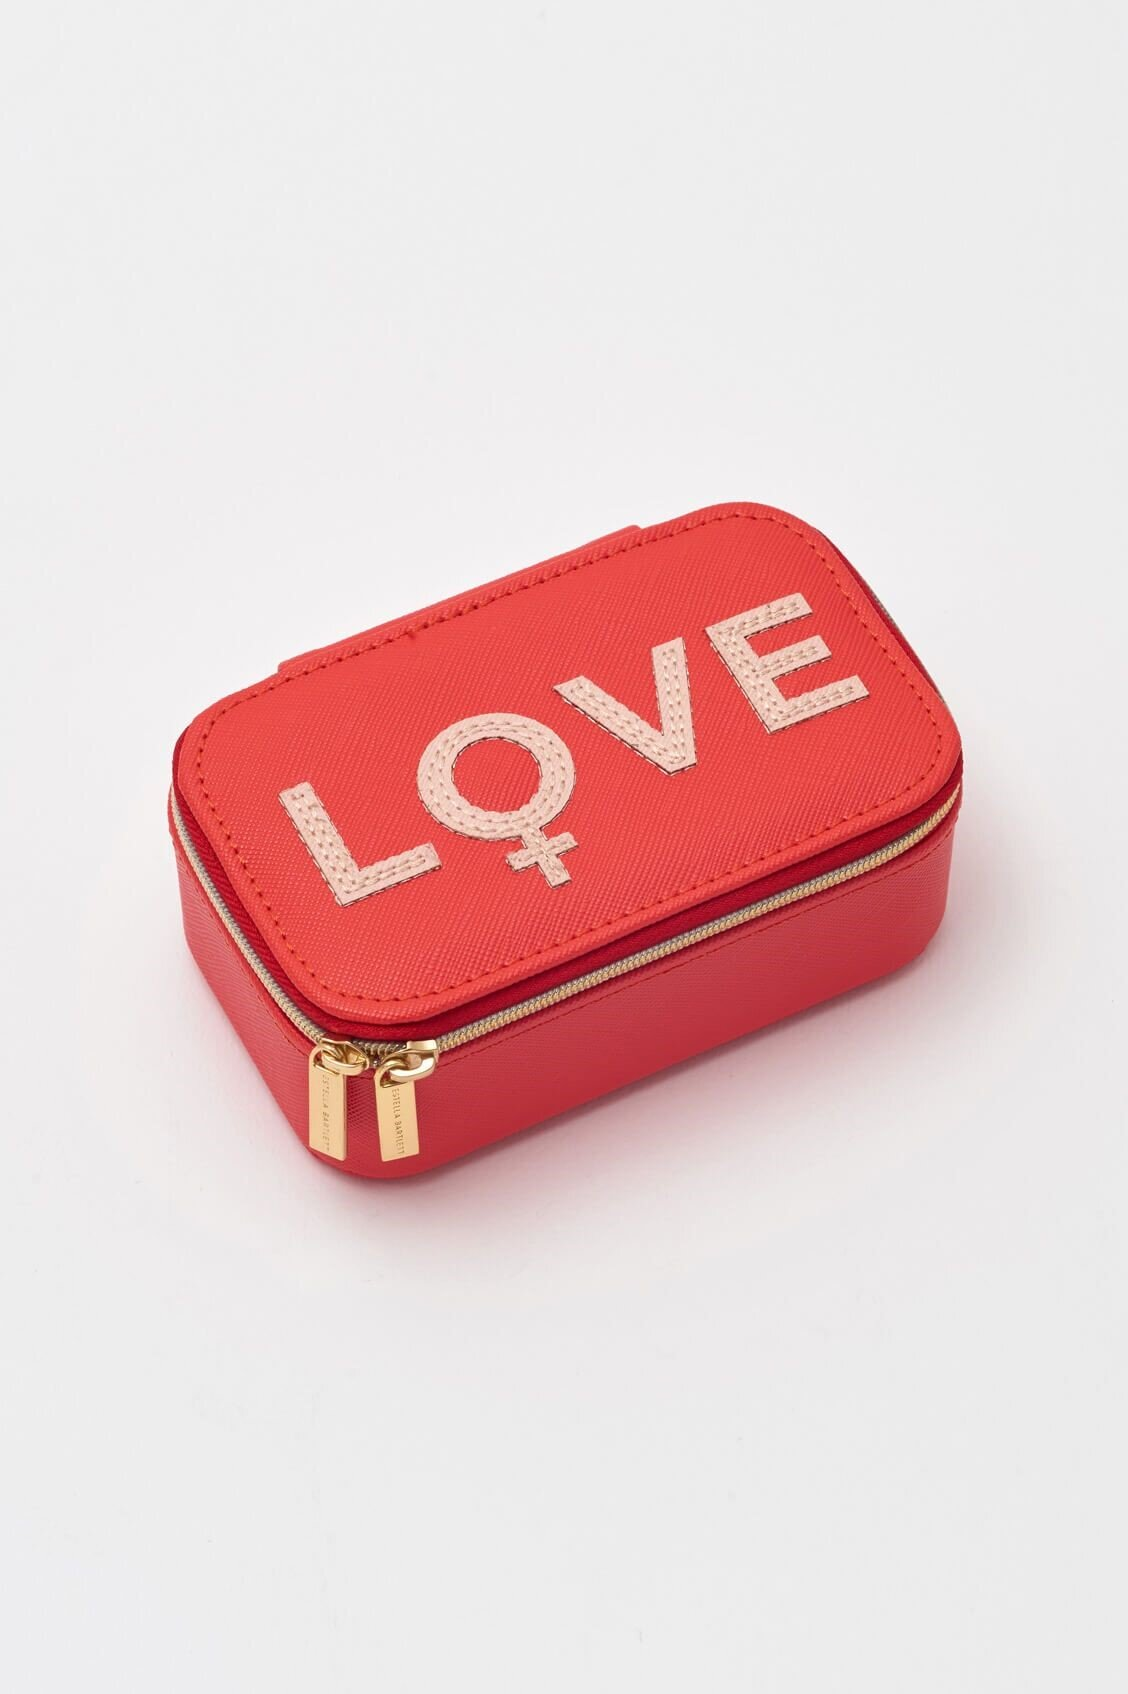 Estella Bartlett Jewellery Box Mini - Applique 'LOVE' Coral/Blush